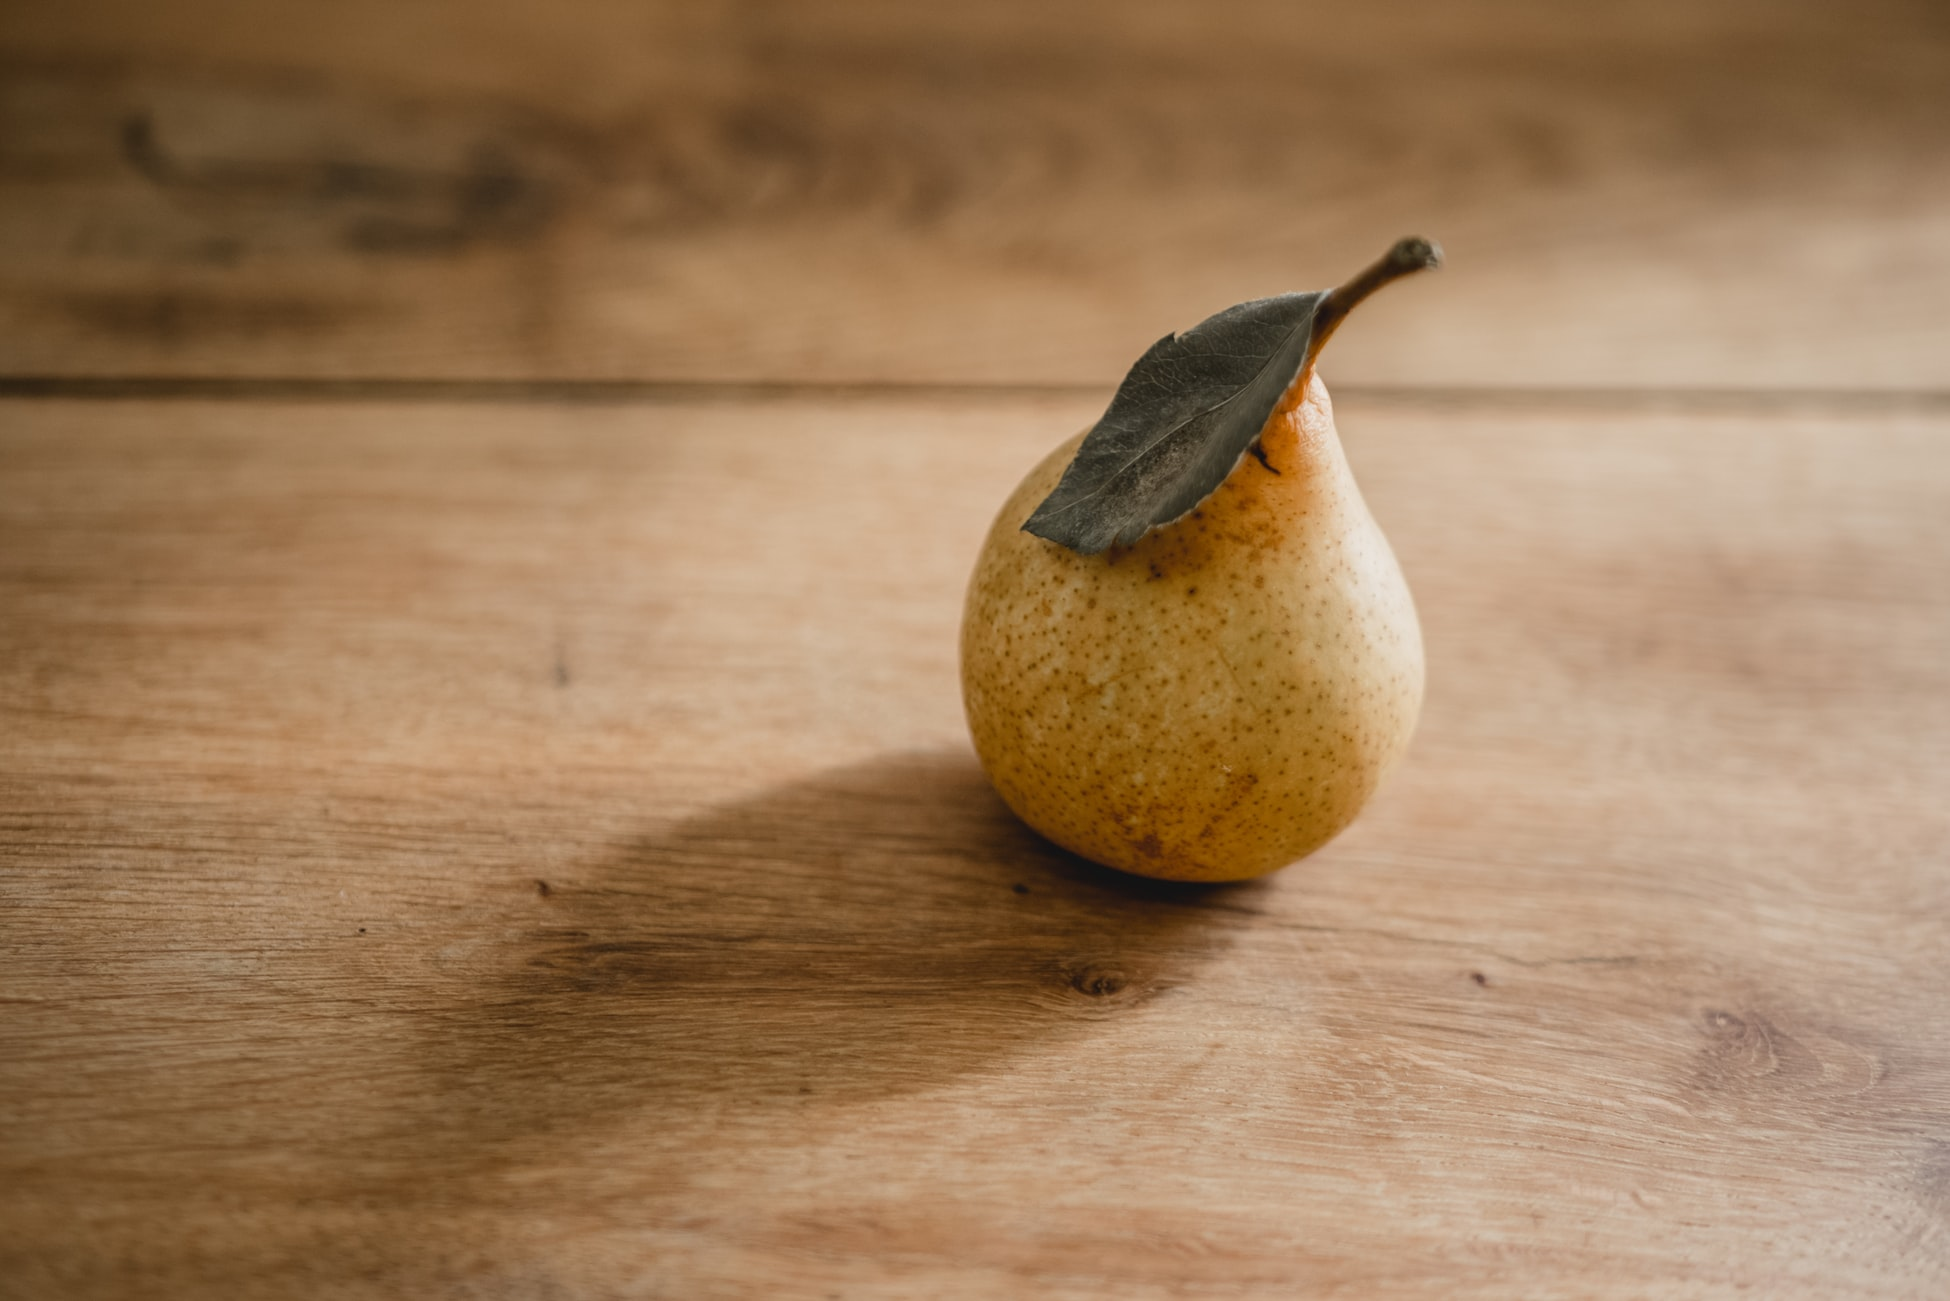 Are dried fruits pears for constipation?